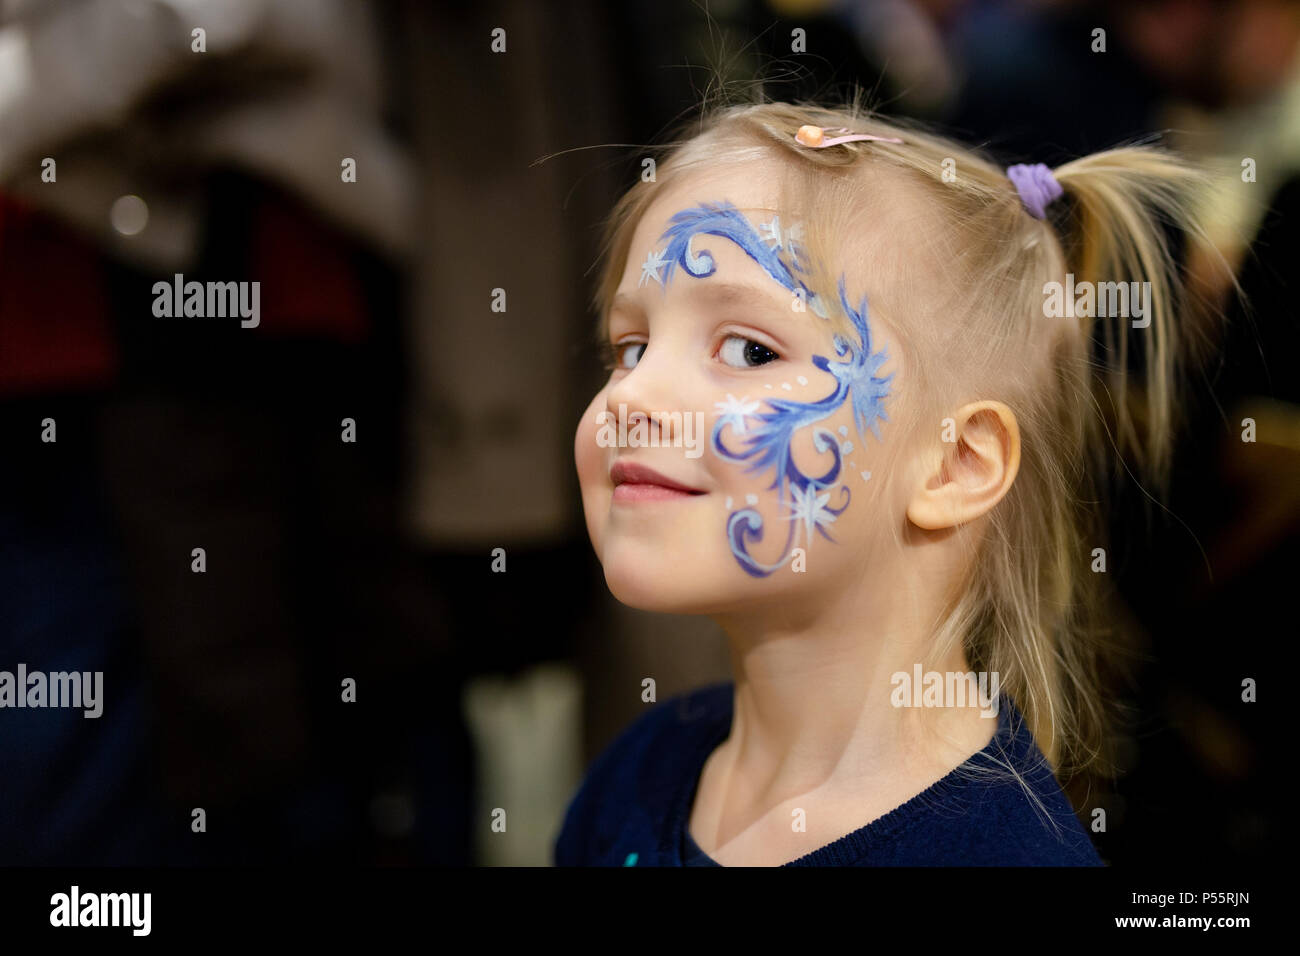 Cute little blond girl with face painting. Blue abstract snowflake pattern by watercolor on kids face. Adorable child with colorful drawings. Children - Stock Image